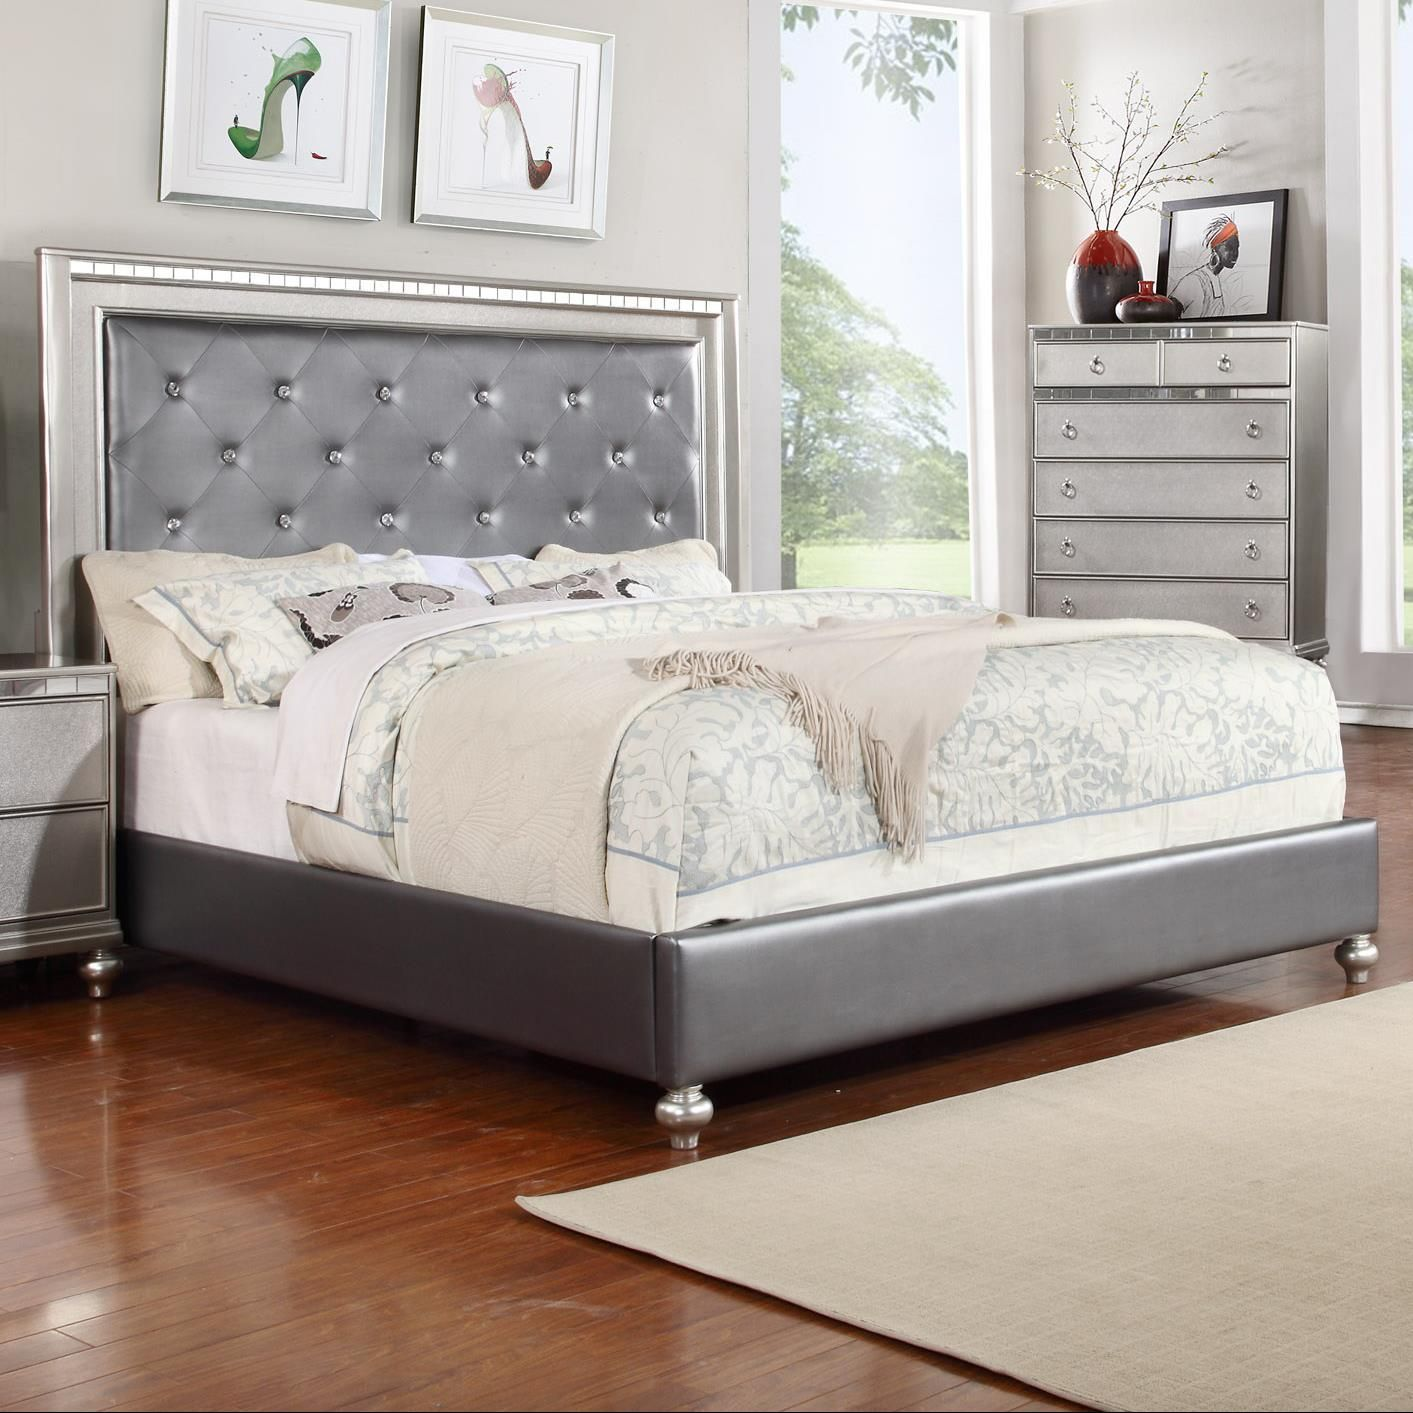 Glam Queen Upholstered Panel Bed With Rhinestone Accent By Lifestyle At Rotmans Unique Bedroom Furniture Bedroom Set Silver Bedroom Decor